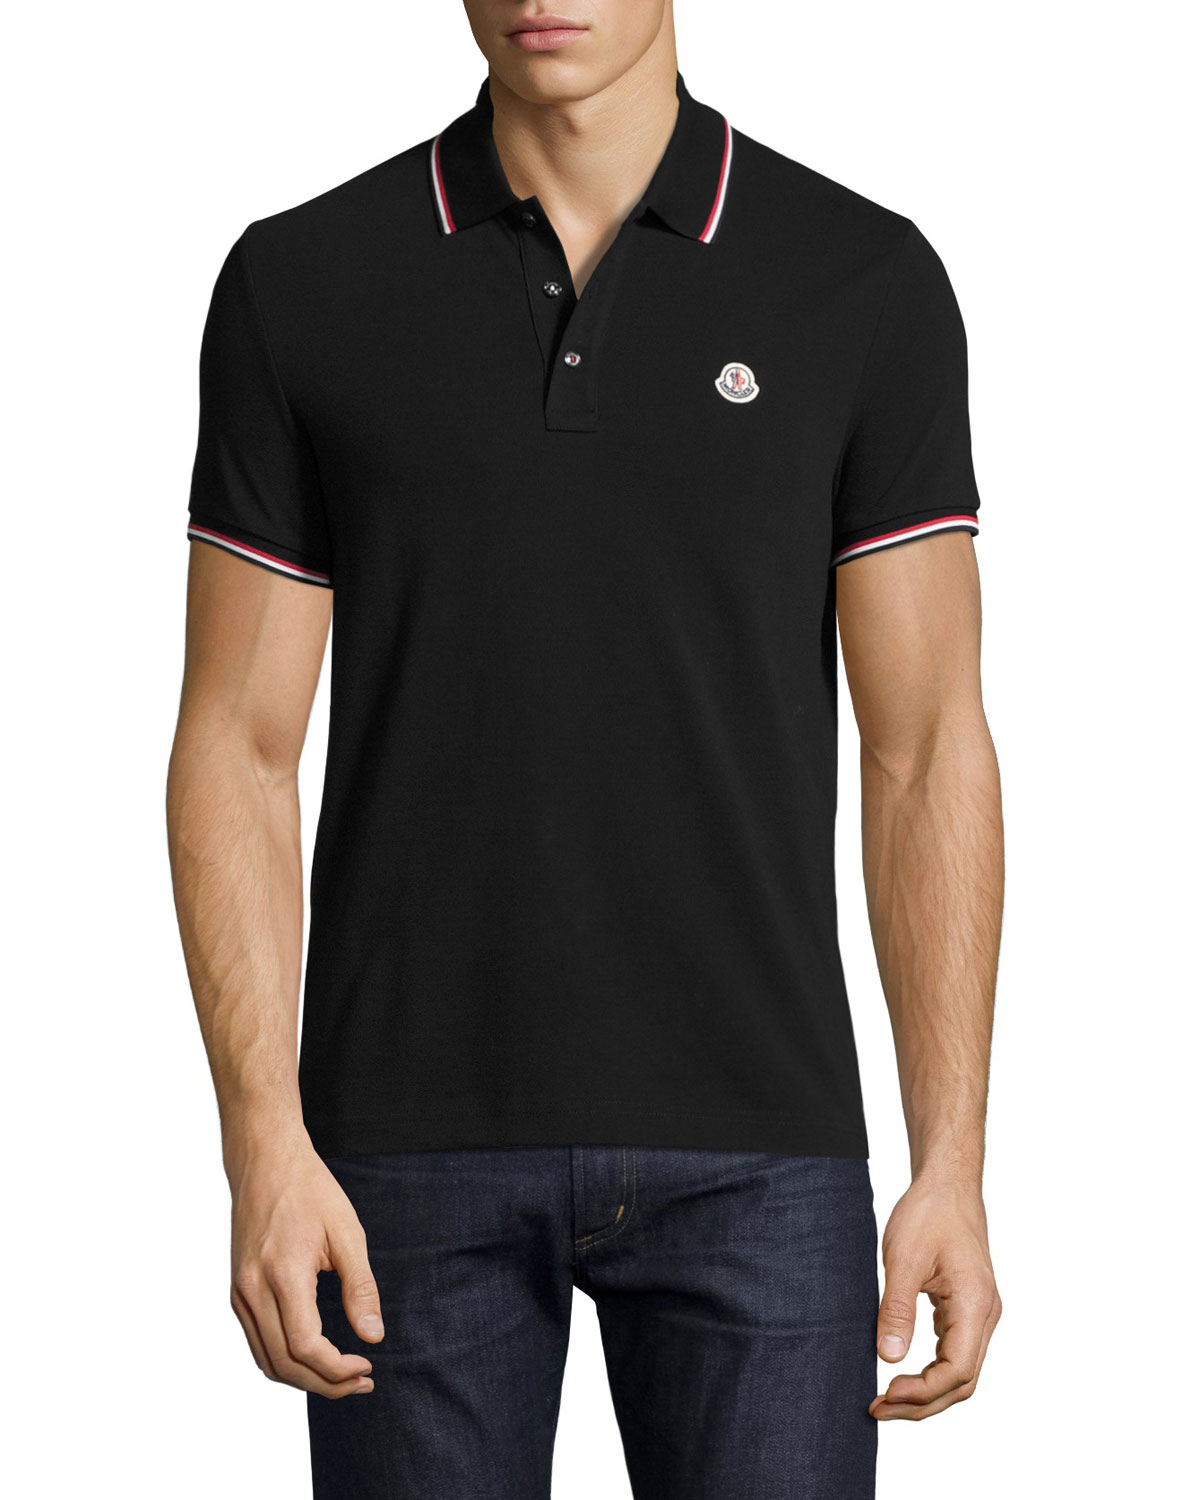 the apparels moncler tipped piqu polo shirt. Black Bedroom Furniture Sets. Home Design Ideas